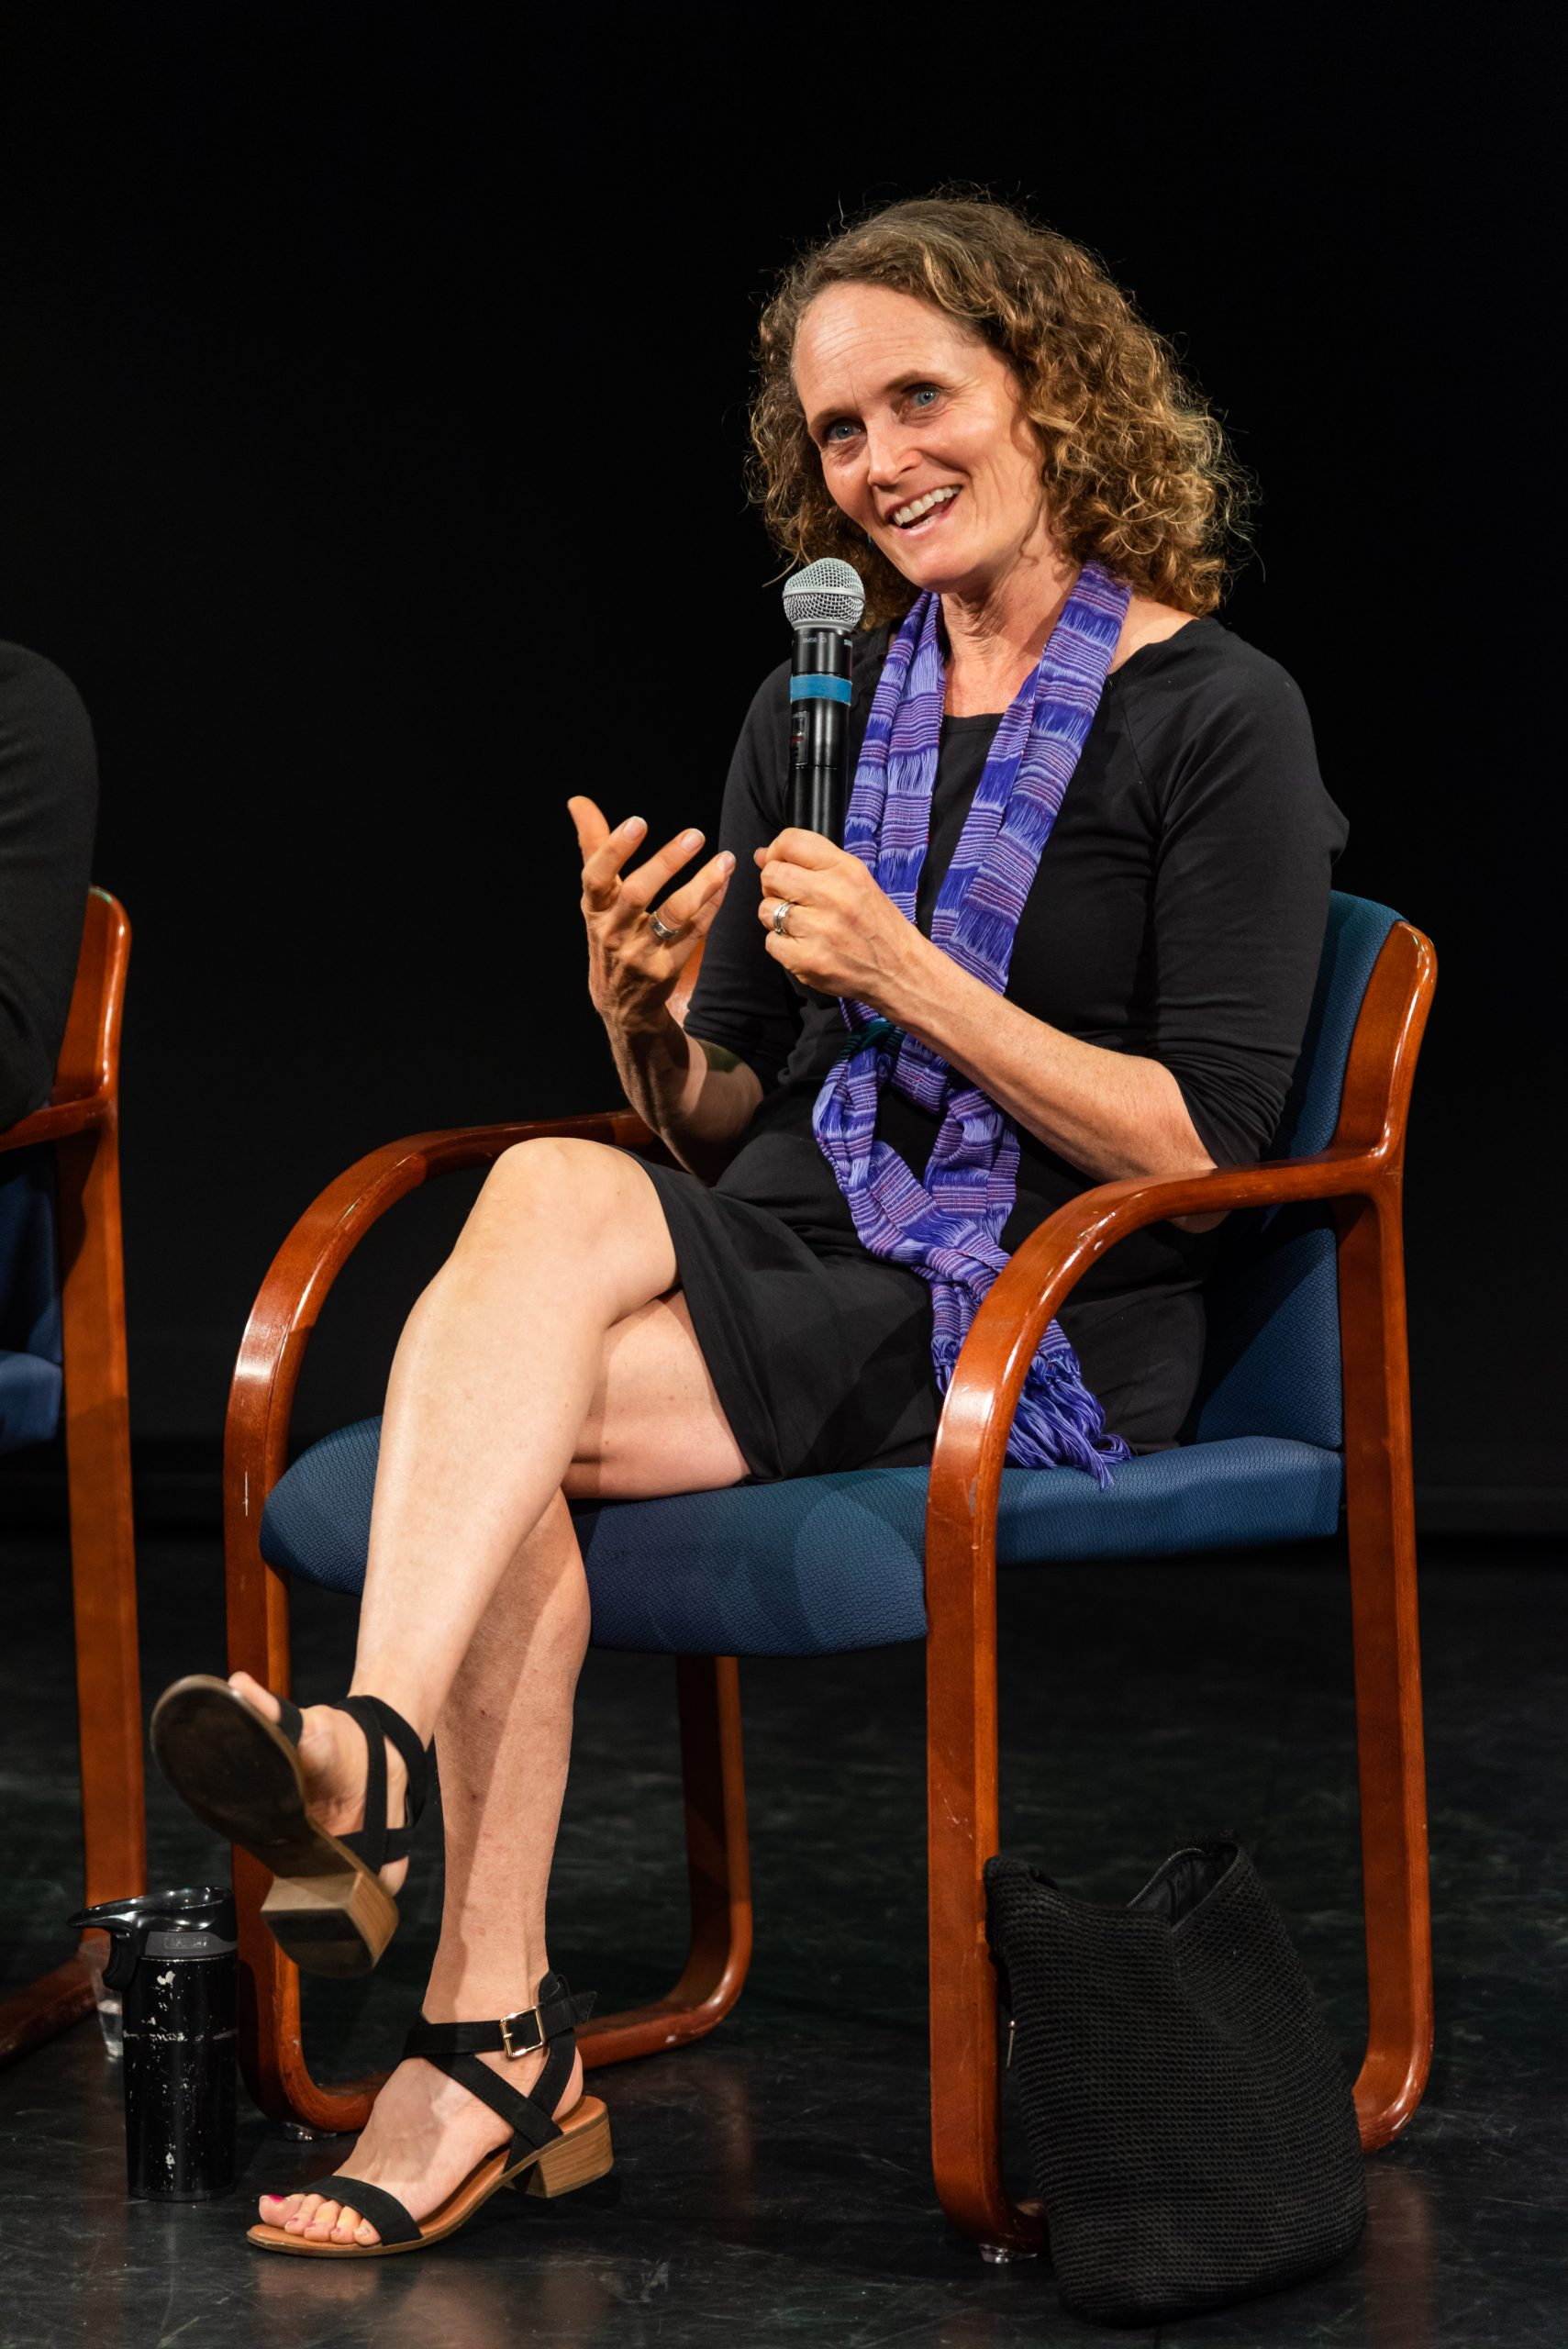 Jenny Jay is pictured during a talk show